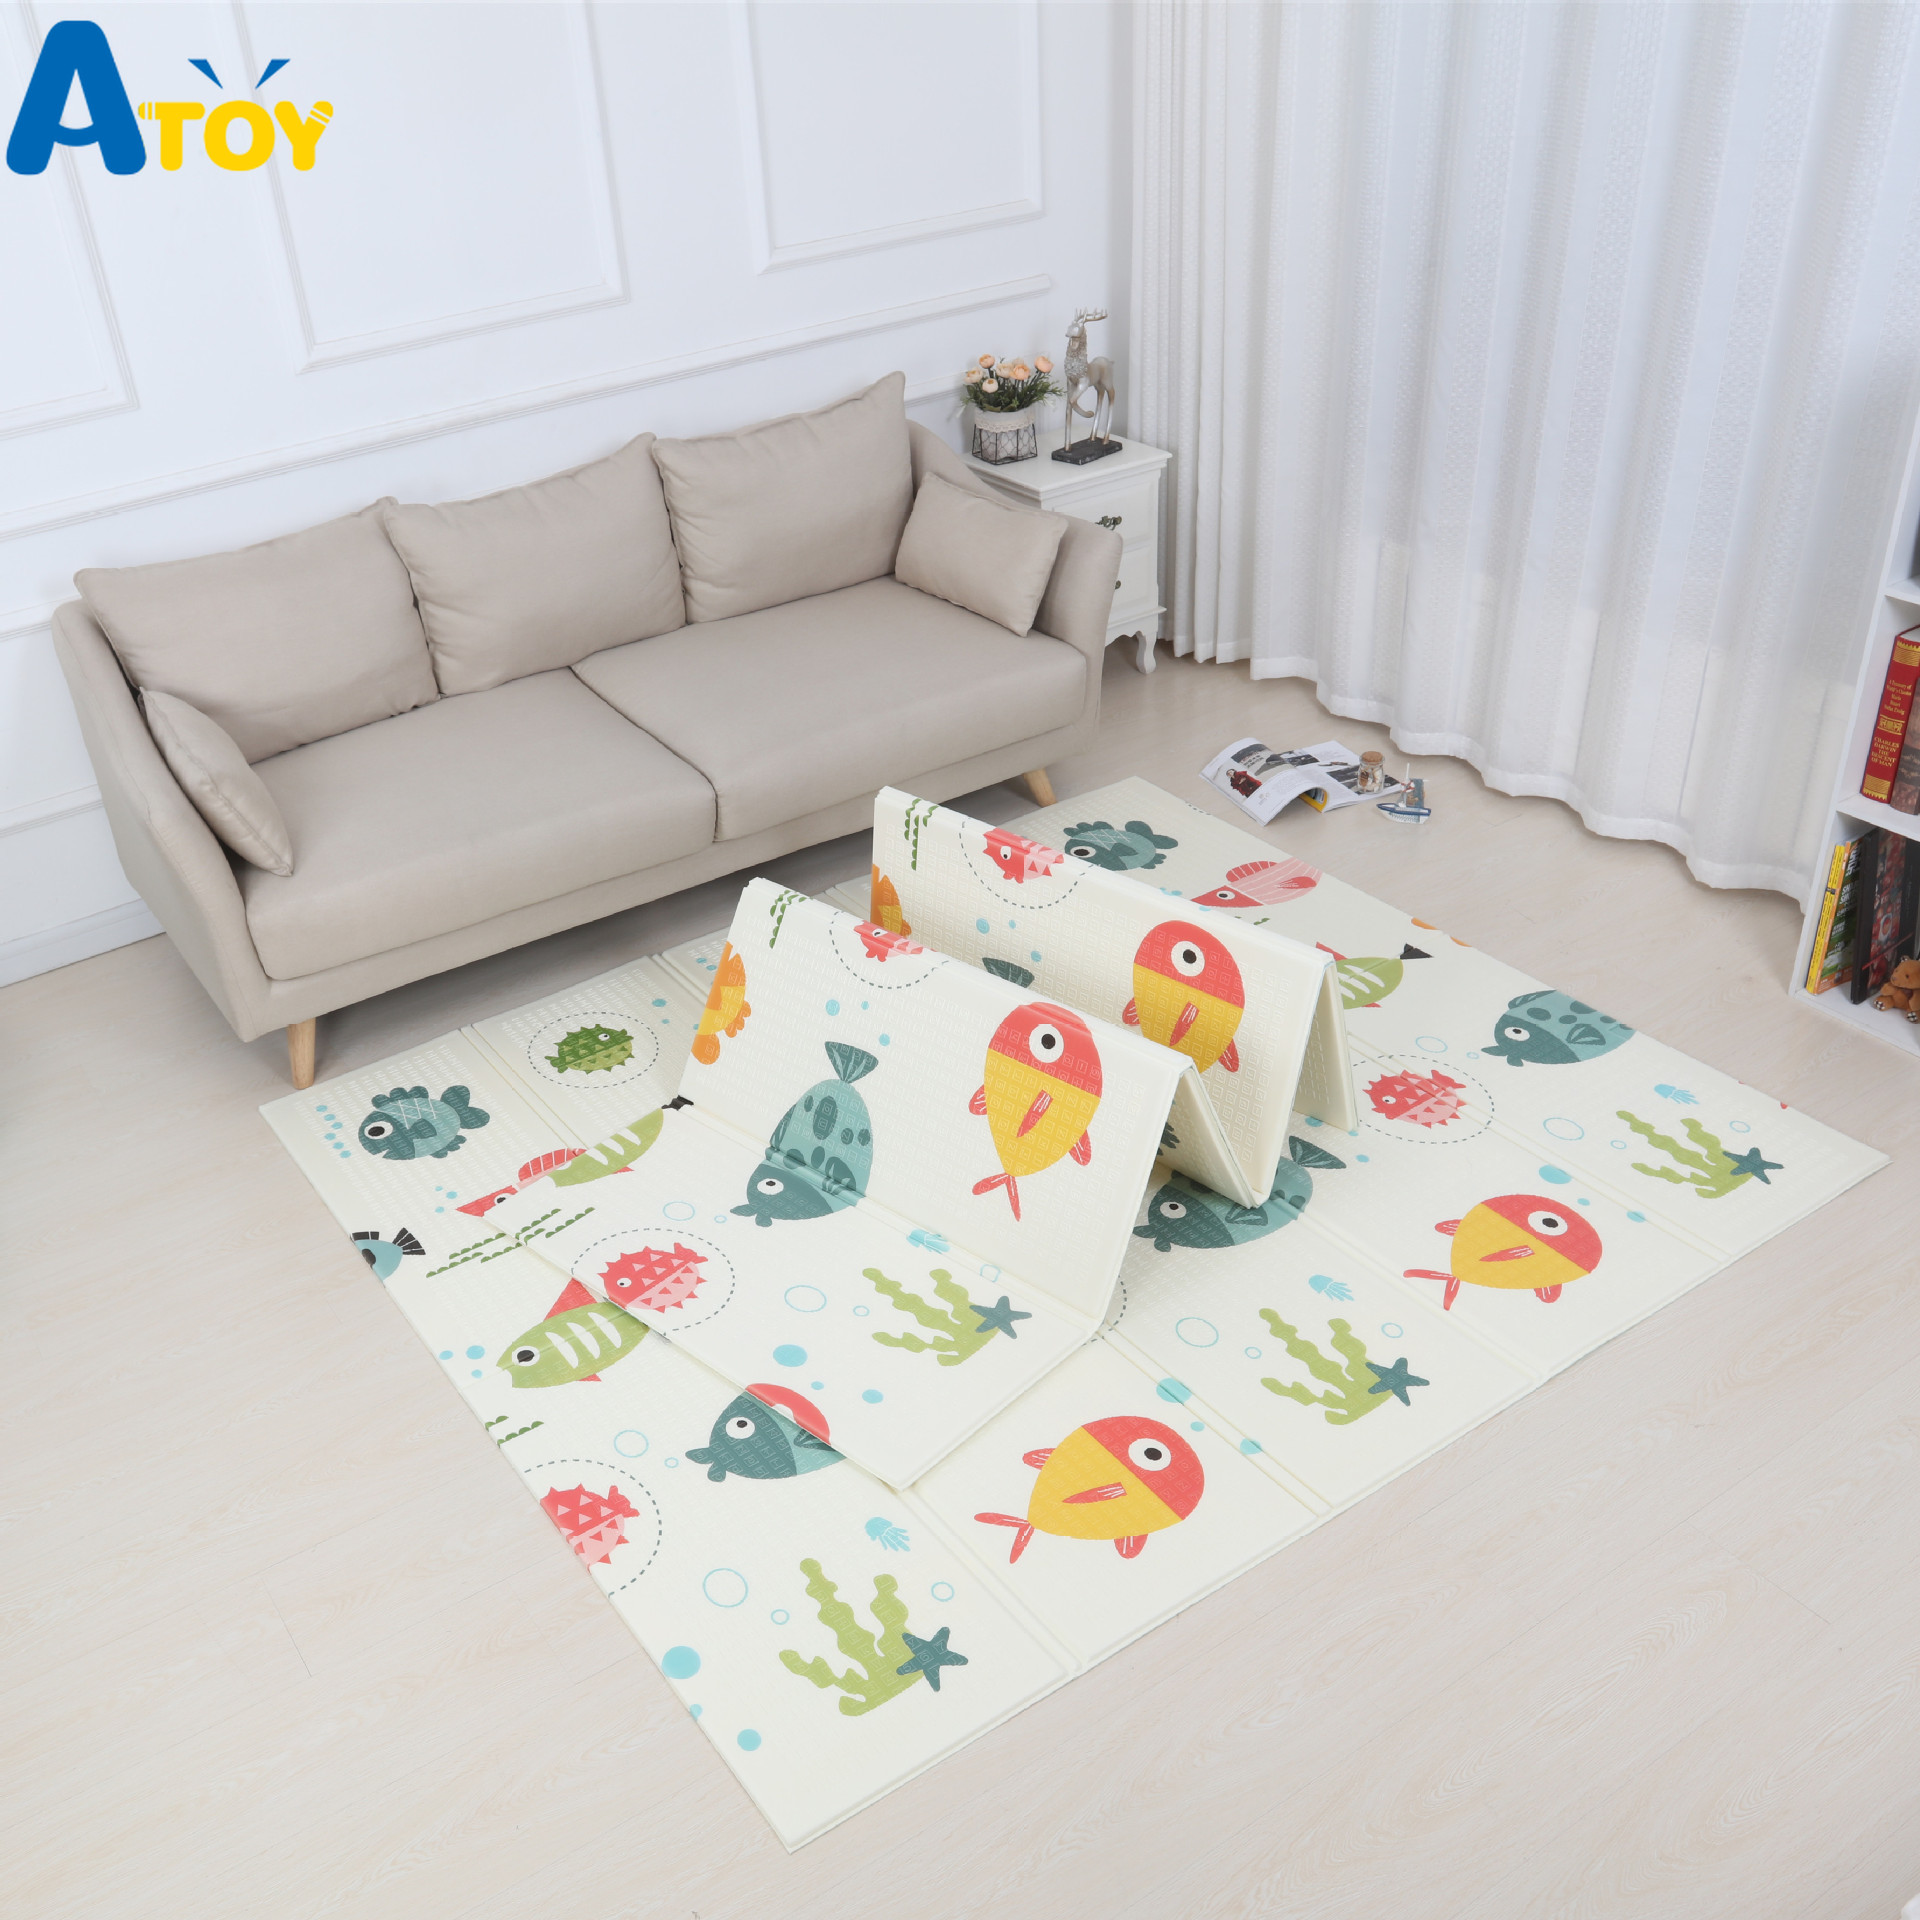 XPE Baby Infant Folding Playmat Baby 2-sided Mat Kids Rug Foam Baby Gym Thick Resin Soft Room Crawling Pad Carpet Toddler ToysXPE Baby Infant Folding Playmat Baby 2-sided Mat Kids Rug Foam Baby Gym Thick Resin Soft Room Crawling Pad Carpet Toddler Toys